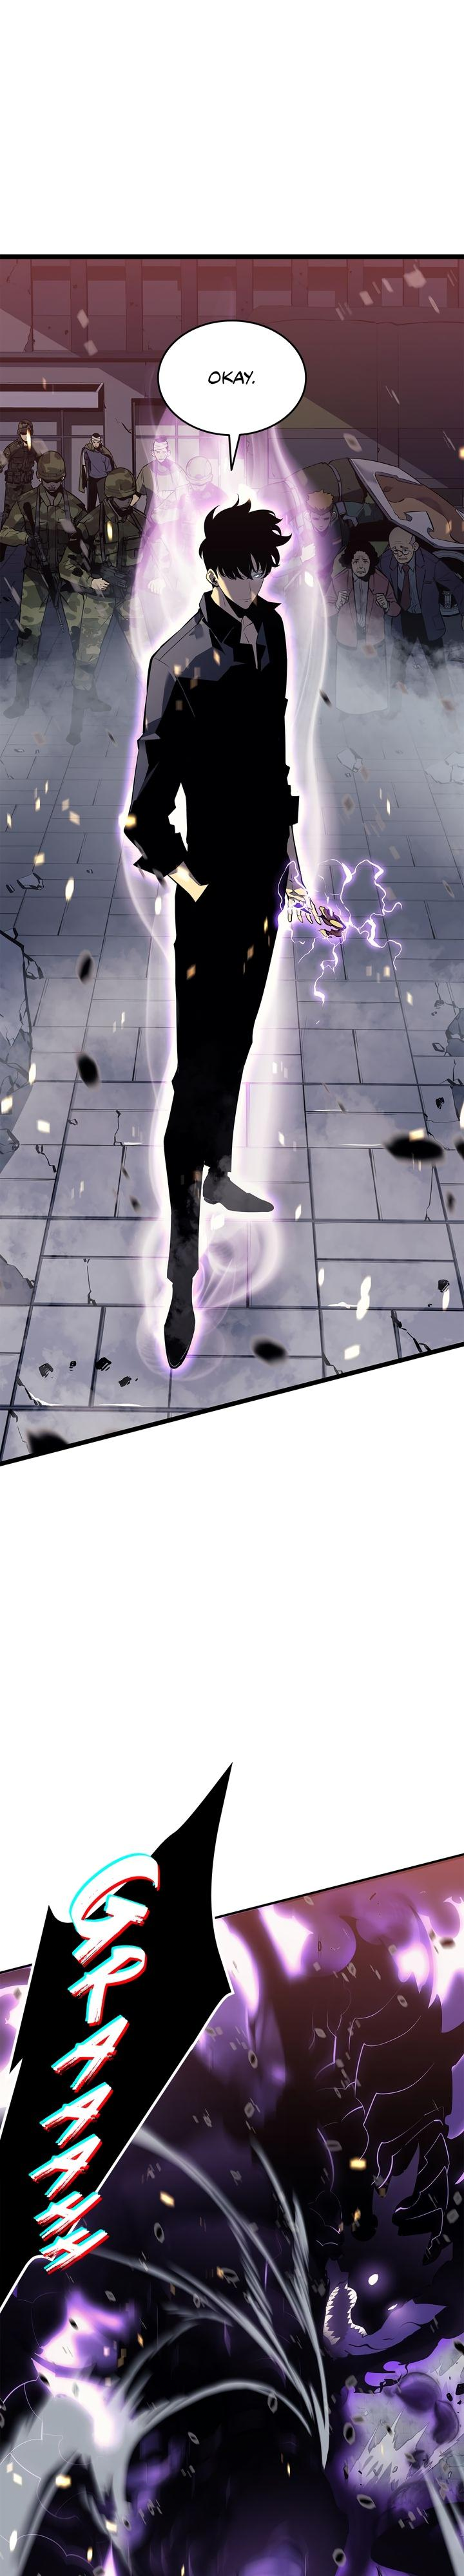 Solo Leveling, Chapter 134 image 012